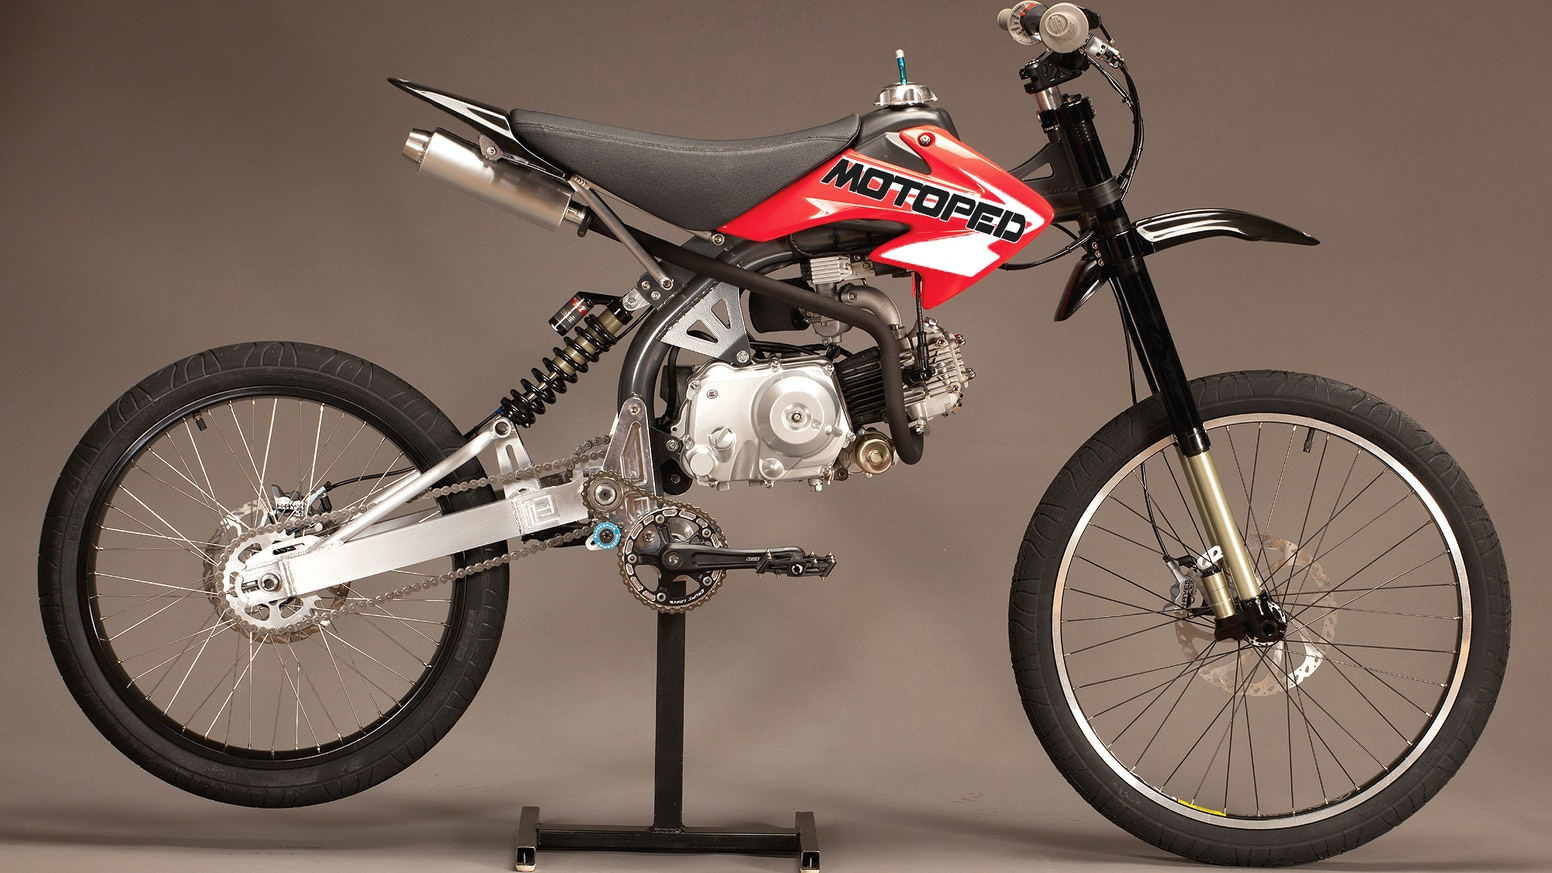 Motopeds by moto fusion kickstarter motoped a diy motorized bike kit that you assemble yourself using a xr50pitbike engine and standard mountain bike components solutioingenieria Choice Image